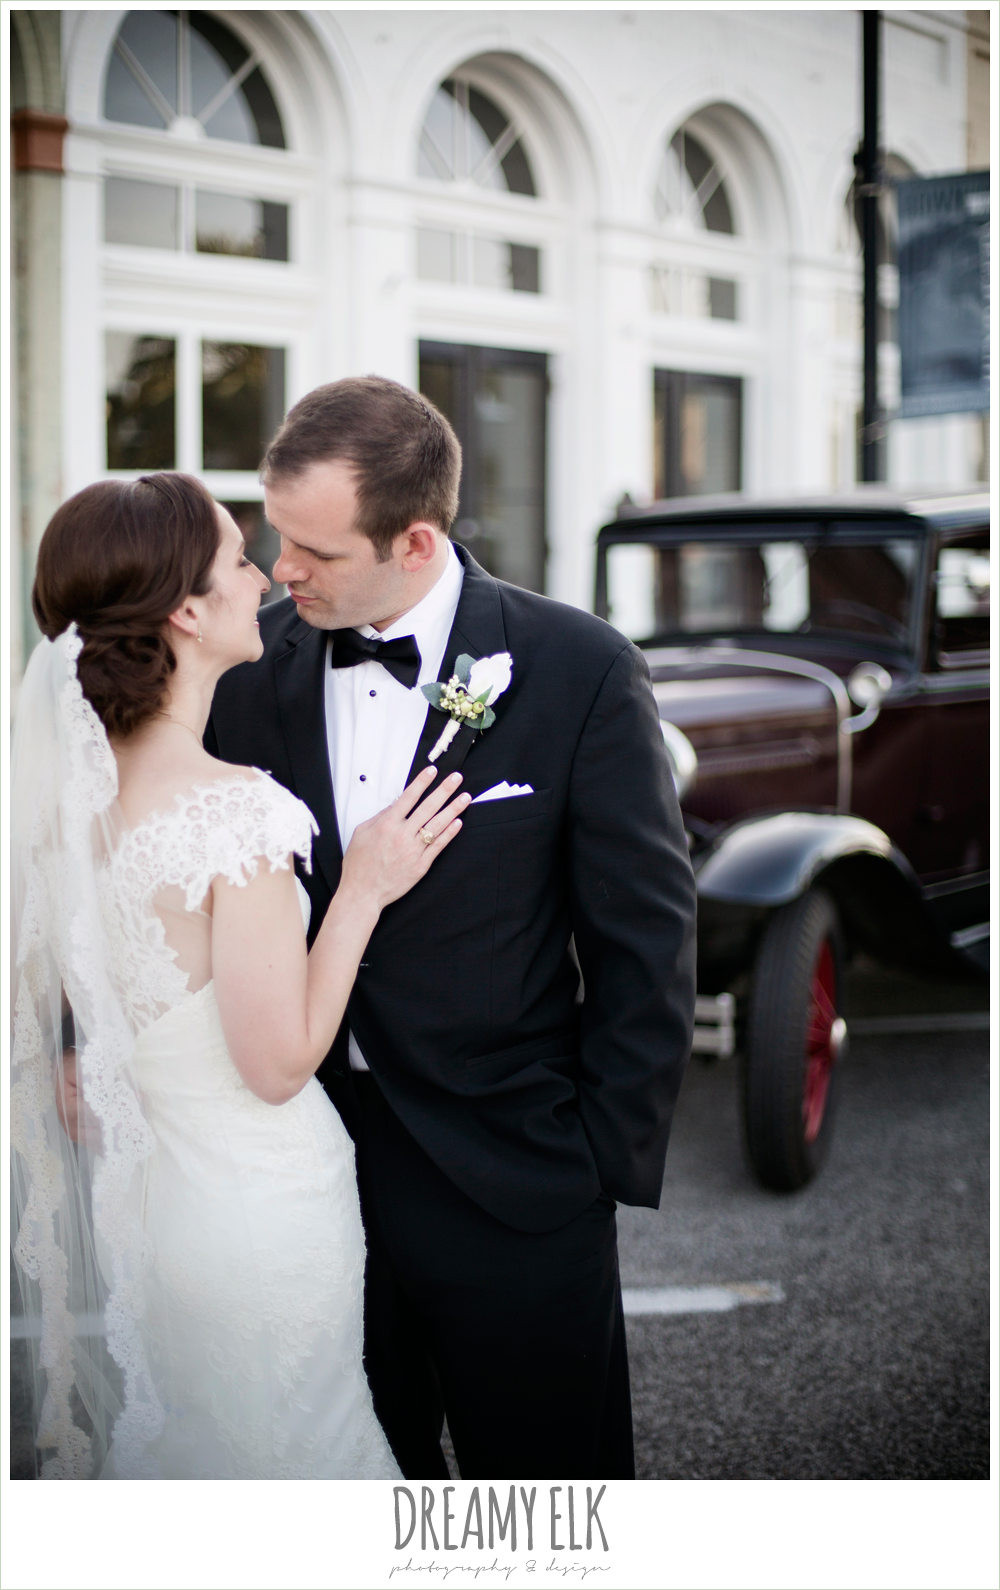 groom, classic tuxedo, white boutonniere, bride, lace wedding dress with lace sleeves, lace trimmed veil, bride and groom portrait, model t antique car, one eleven east, silver sequin wedding, fourth of july wedding photo {dreamy elk photography and design}